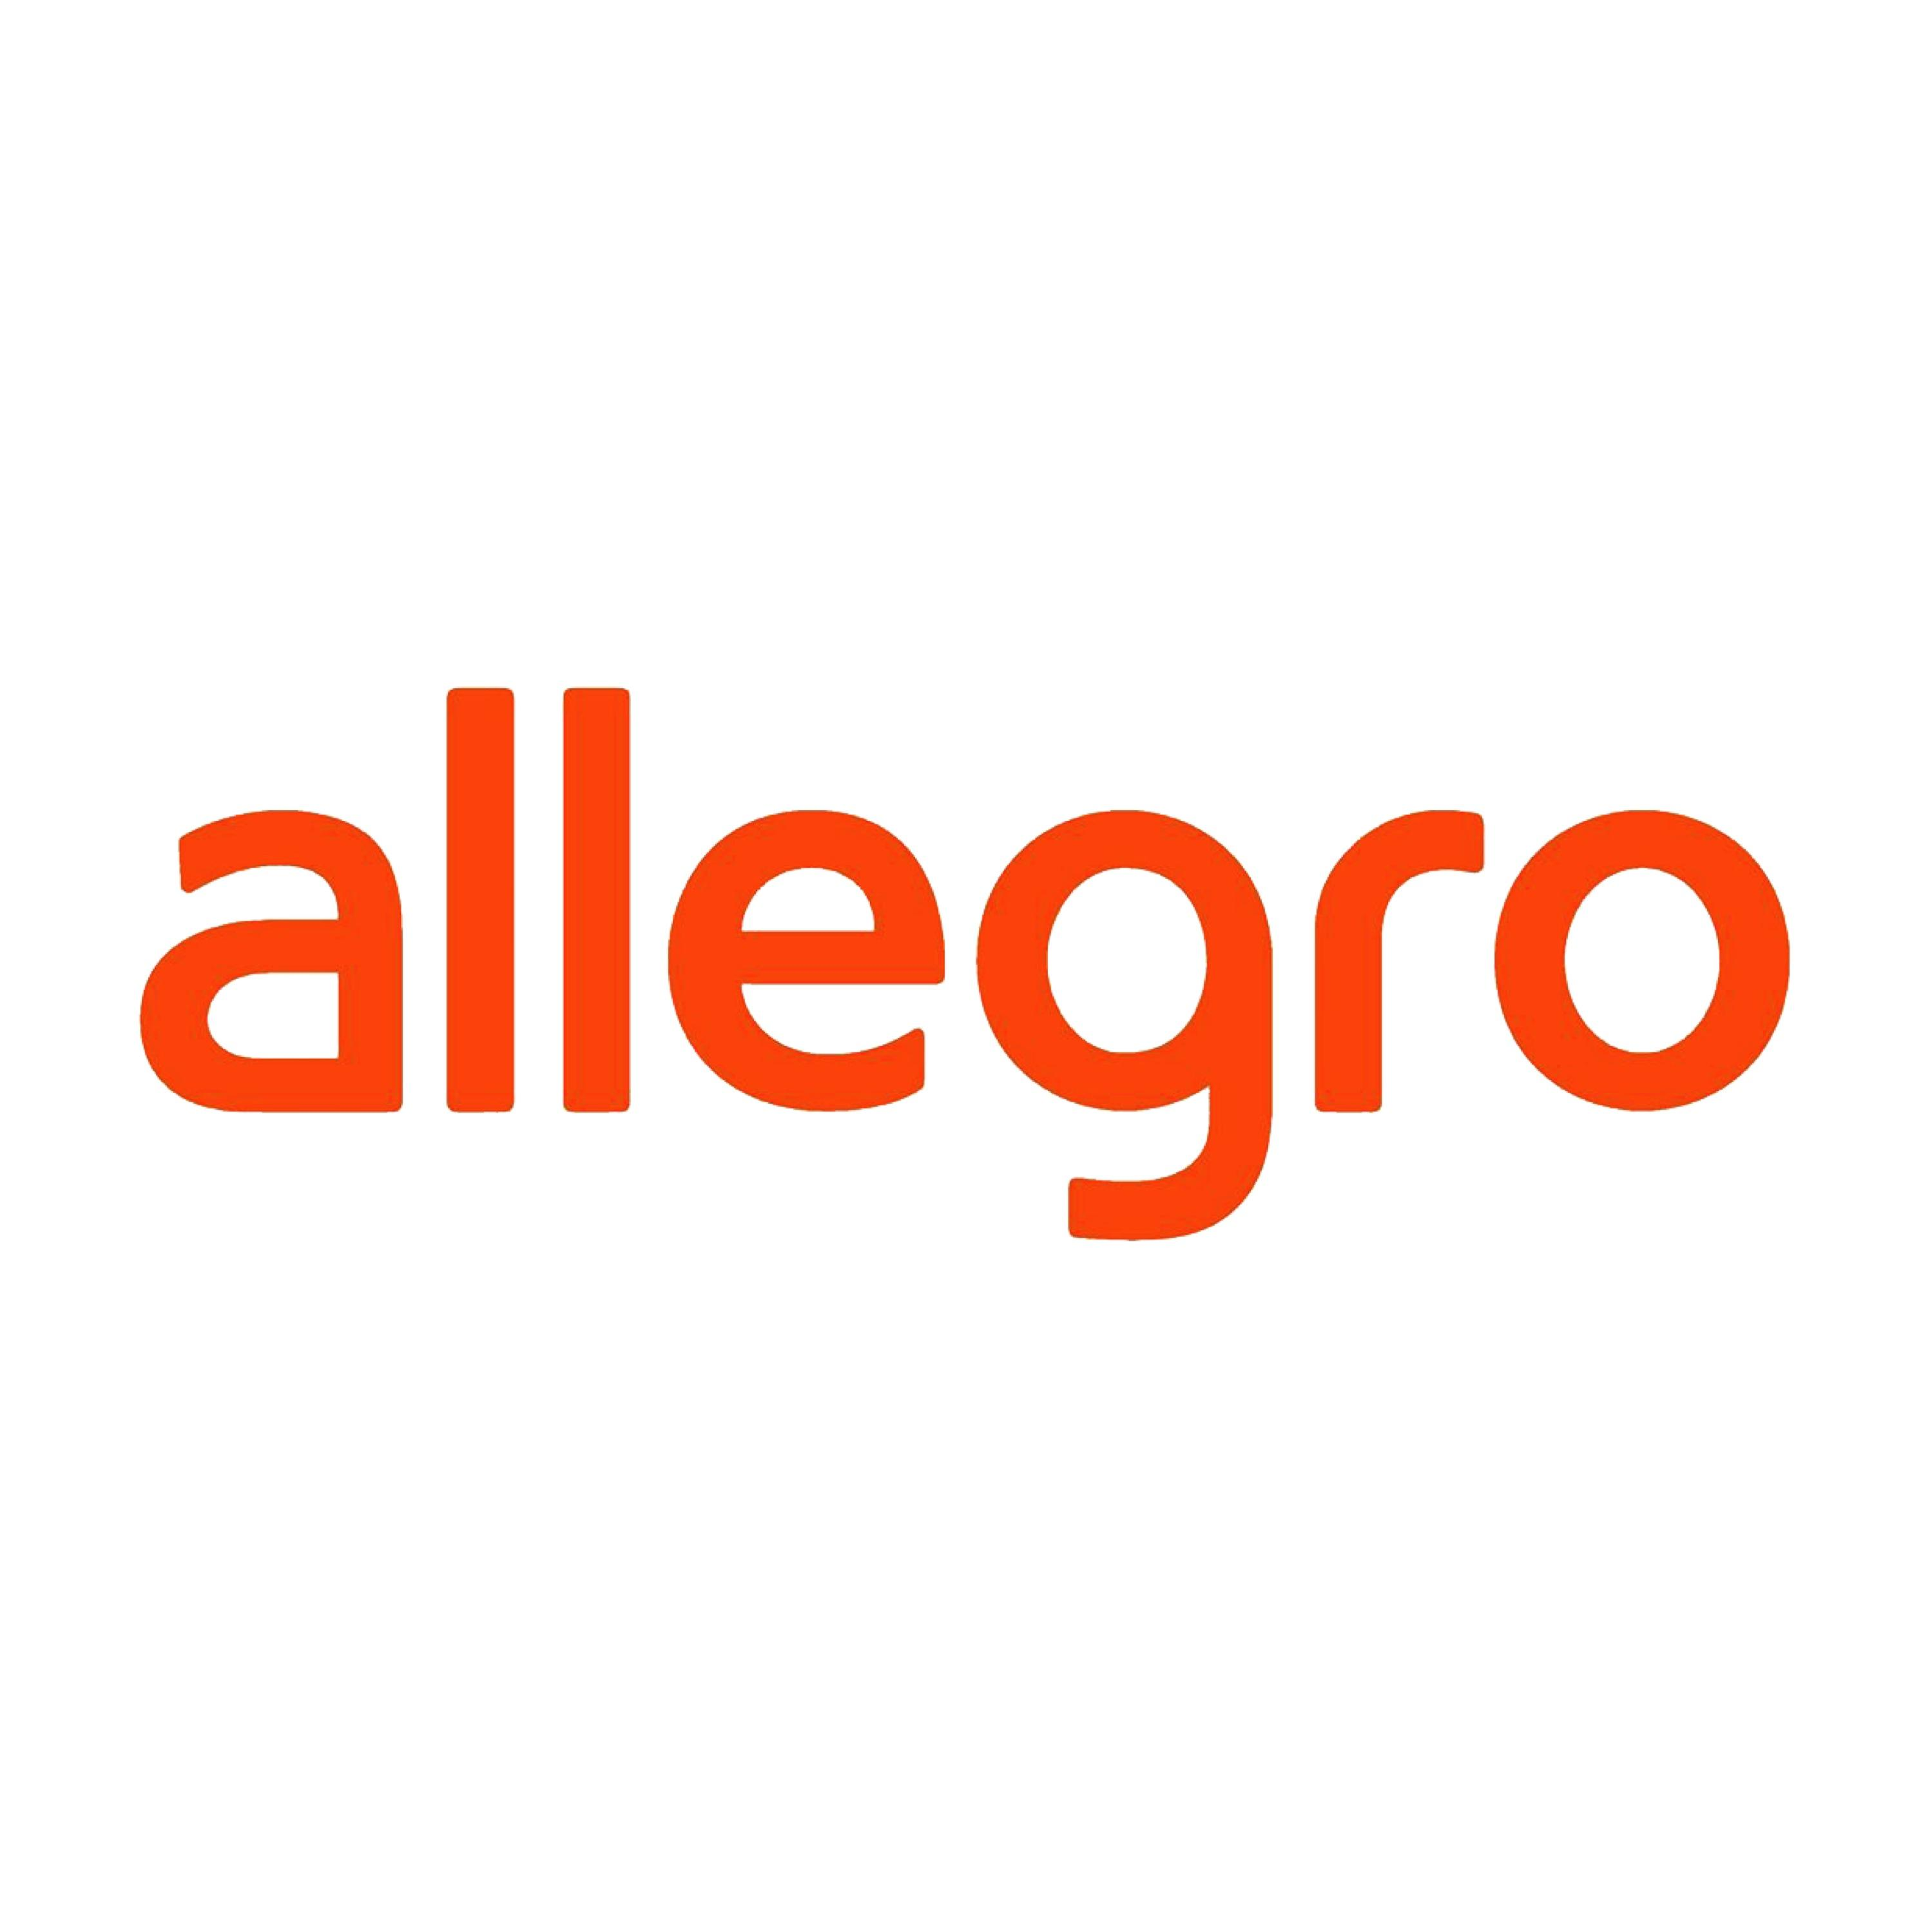 Allegro Pl Sp Z O O Baza Firm Oneplace Marketplanet Pl Oneplace